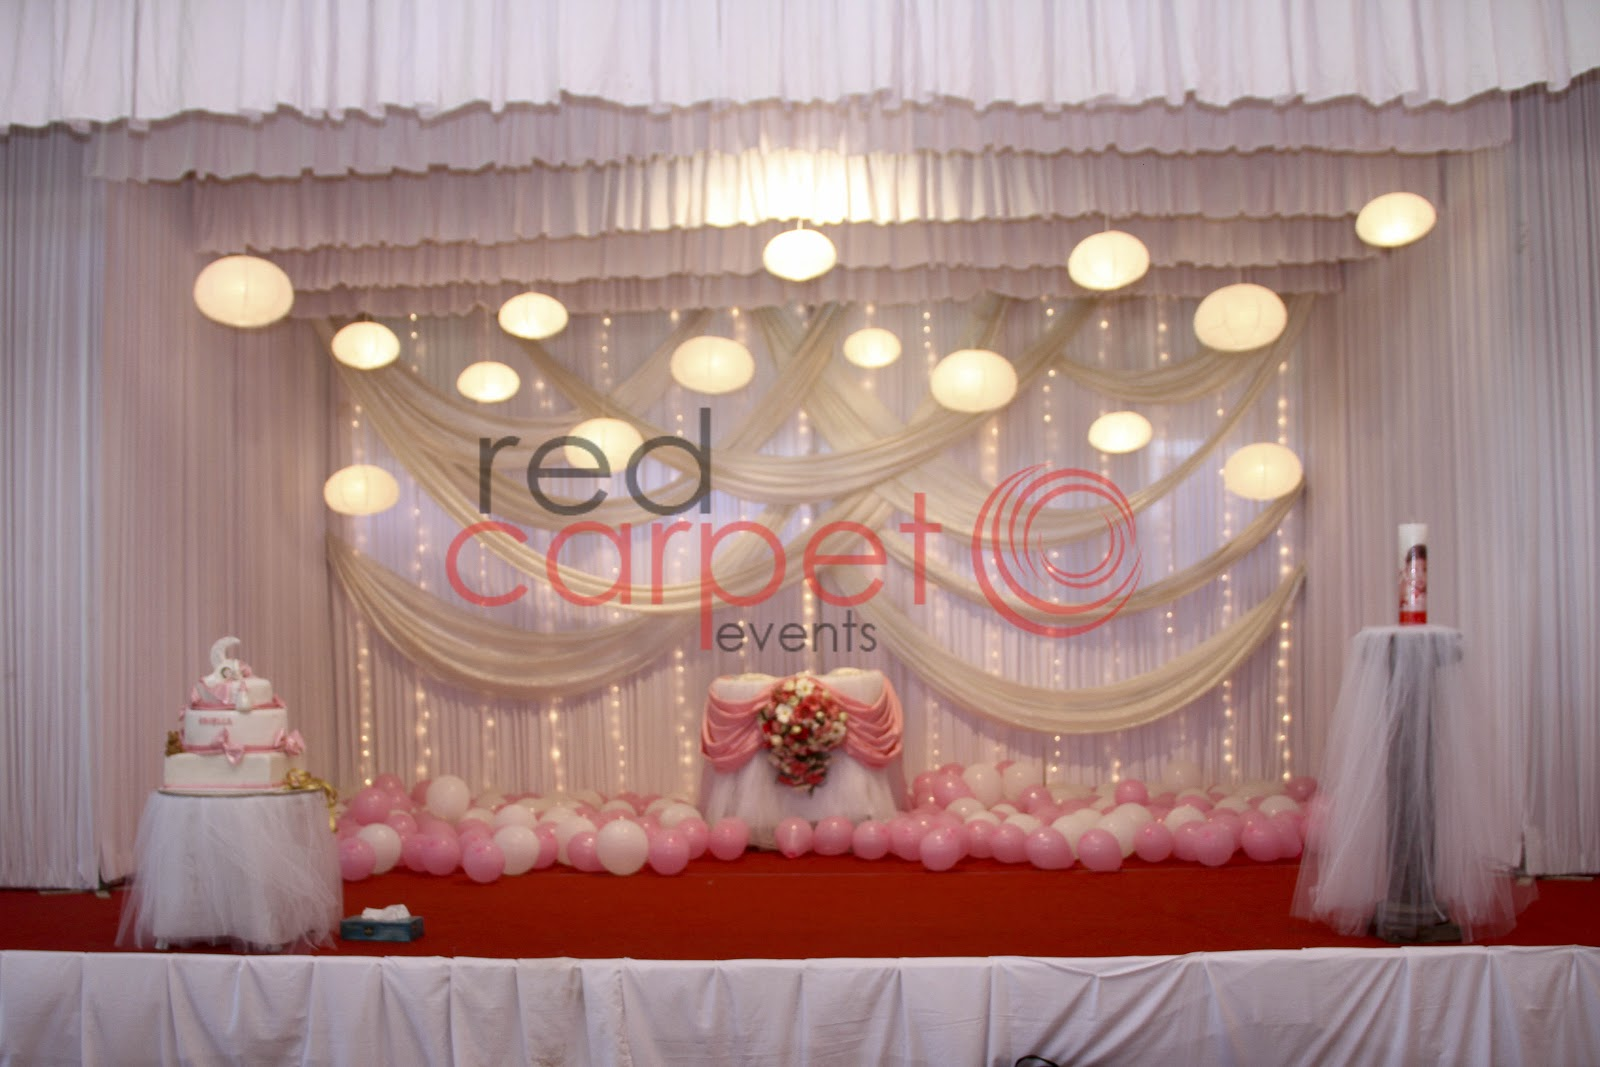 Red carpet events complete event management and wedding for Baby shower stage decoration